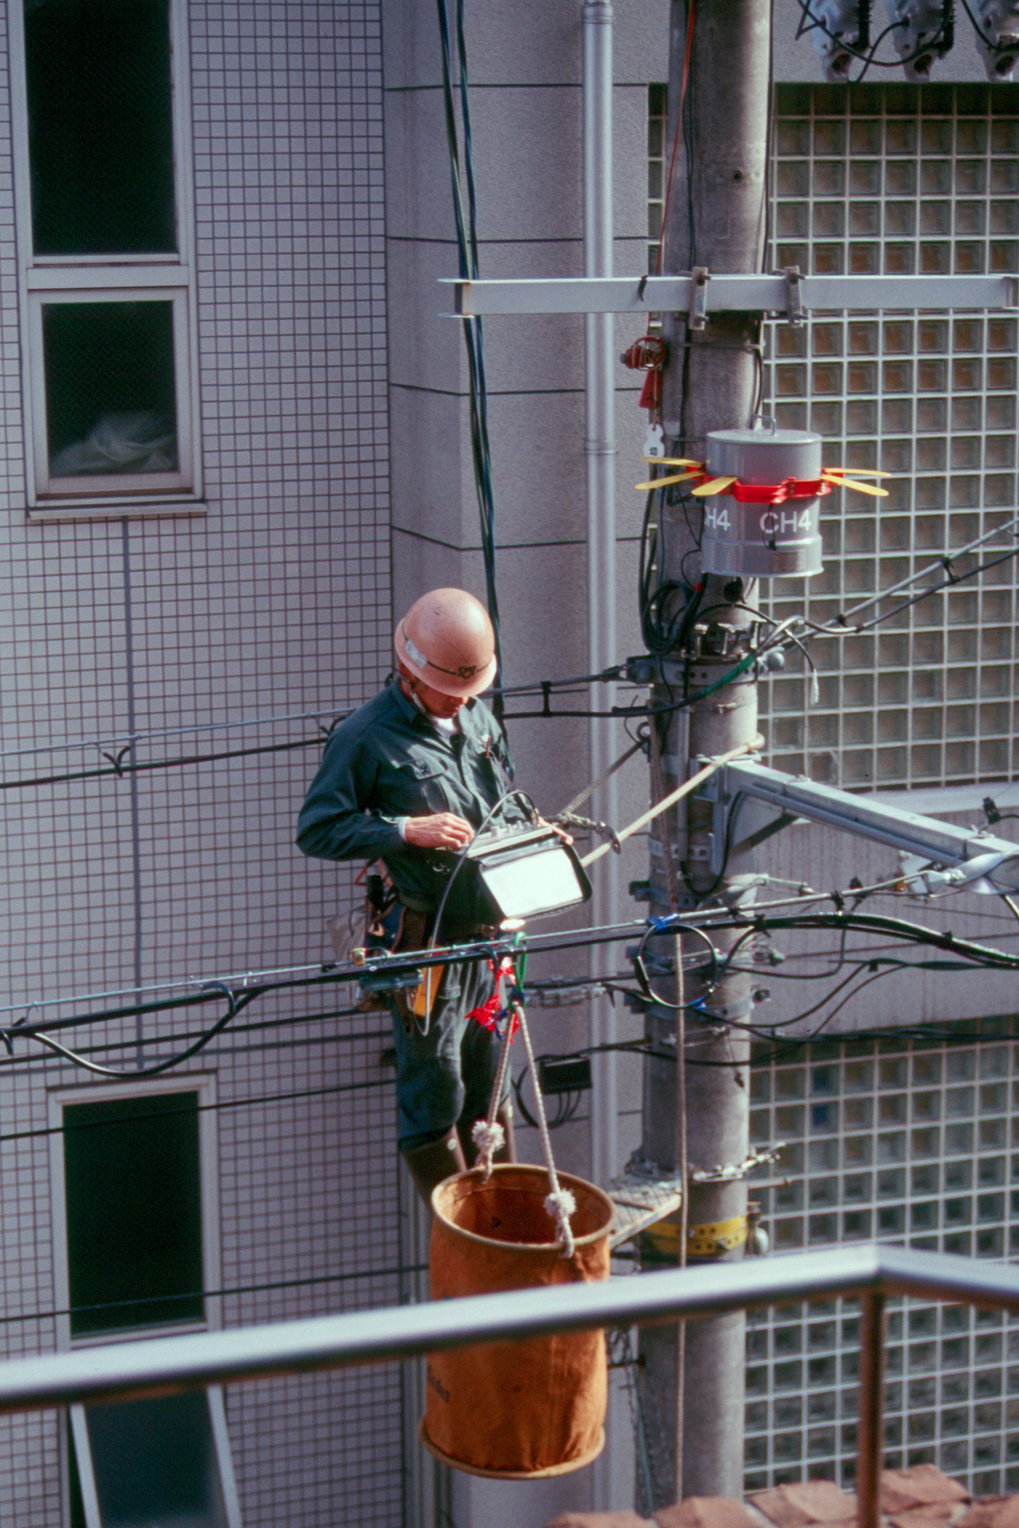 <p>Supply lines getting serviced in Kyoto. As in other Japanese cities, transformers and a dense maze of wires are suspended above the streets rather than placed on the sidewalks for the lack of space.<br /><br />Photo: Christoph Brumann, Kyoto, Japan, 2011<br />Max Planck Institute for Social Anthropology</p>